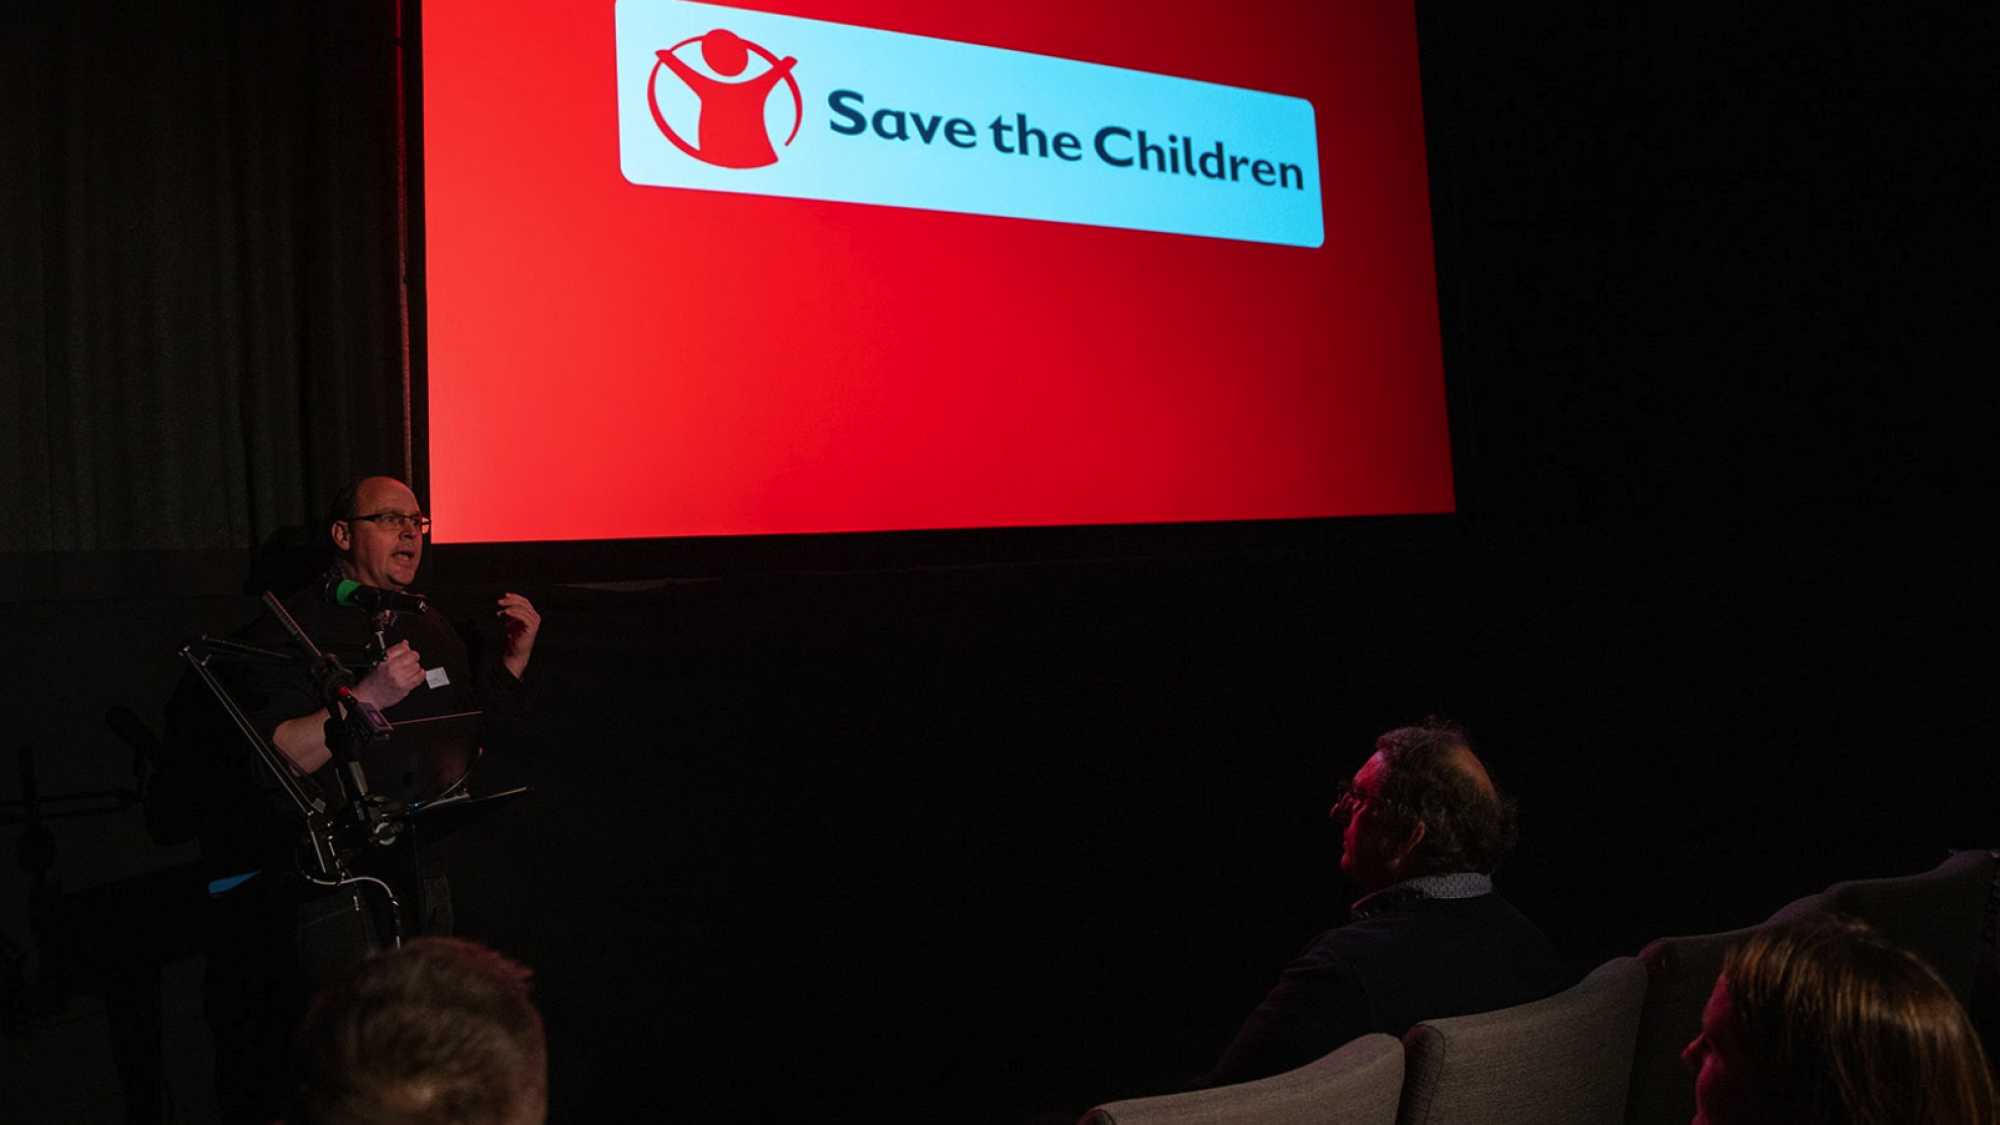 Speaker from Save the Children at Raw London's Relay event